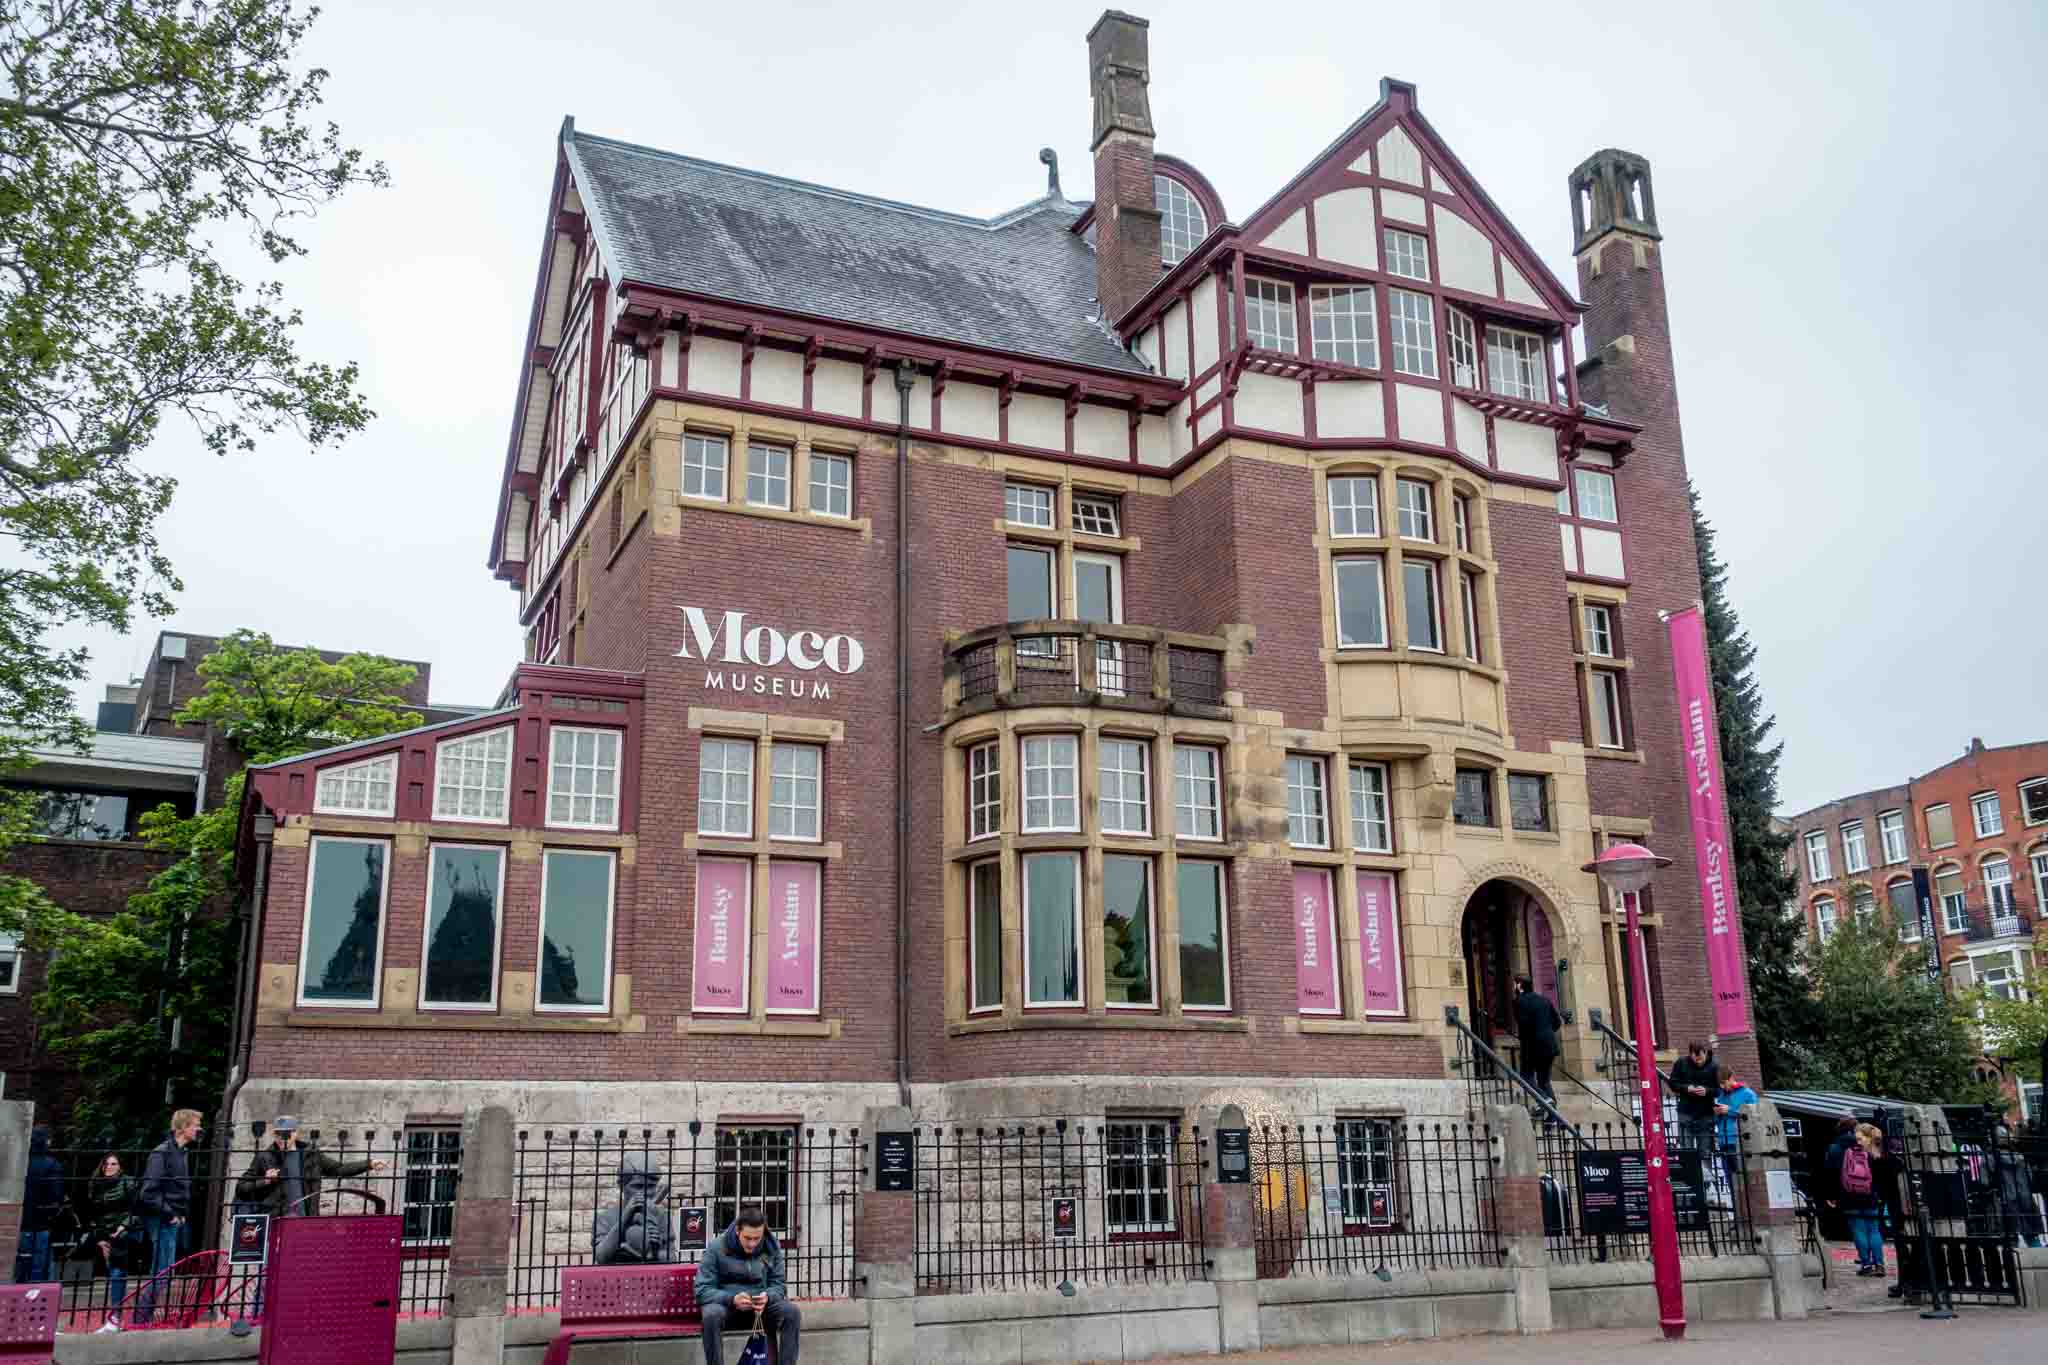 The MOCO Museum is houses in an early 1900s townhouse on Museumplein. A visit here is what to do in Amsterdam for contemporary art lovers.